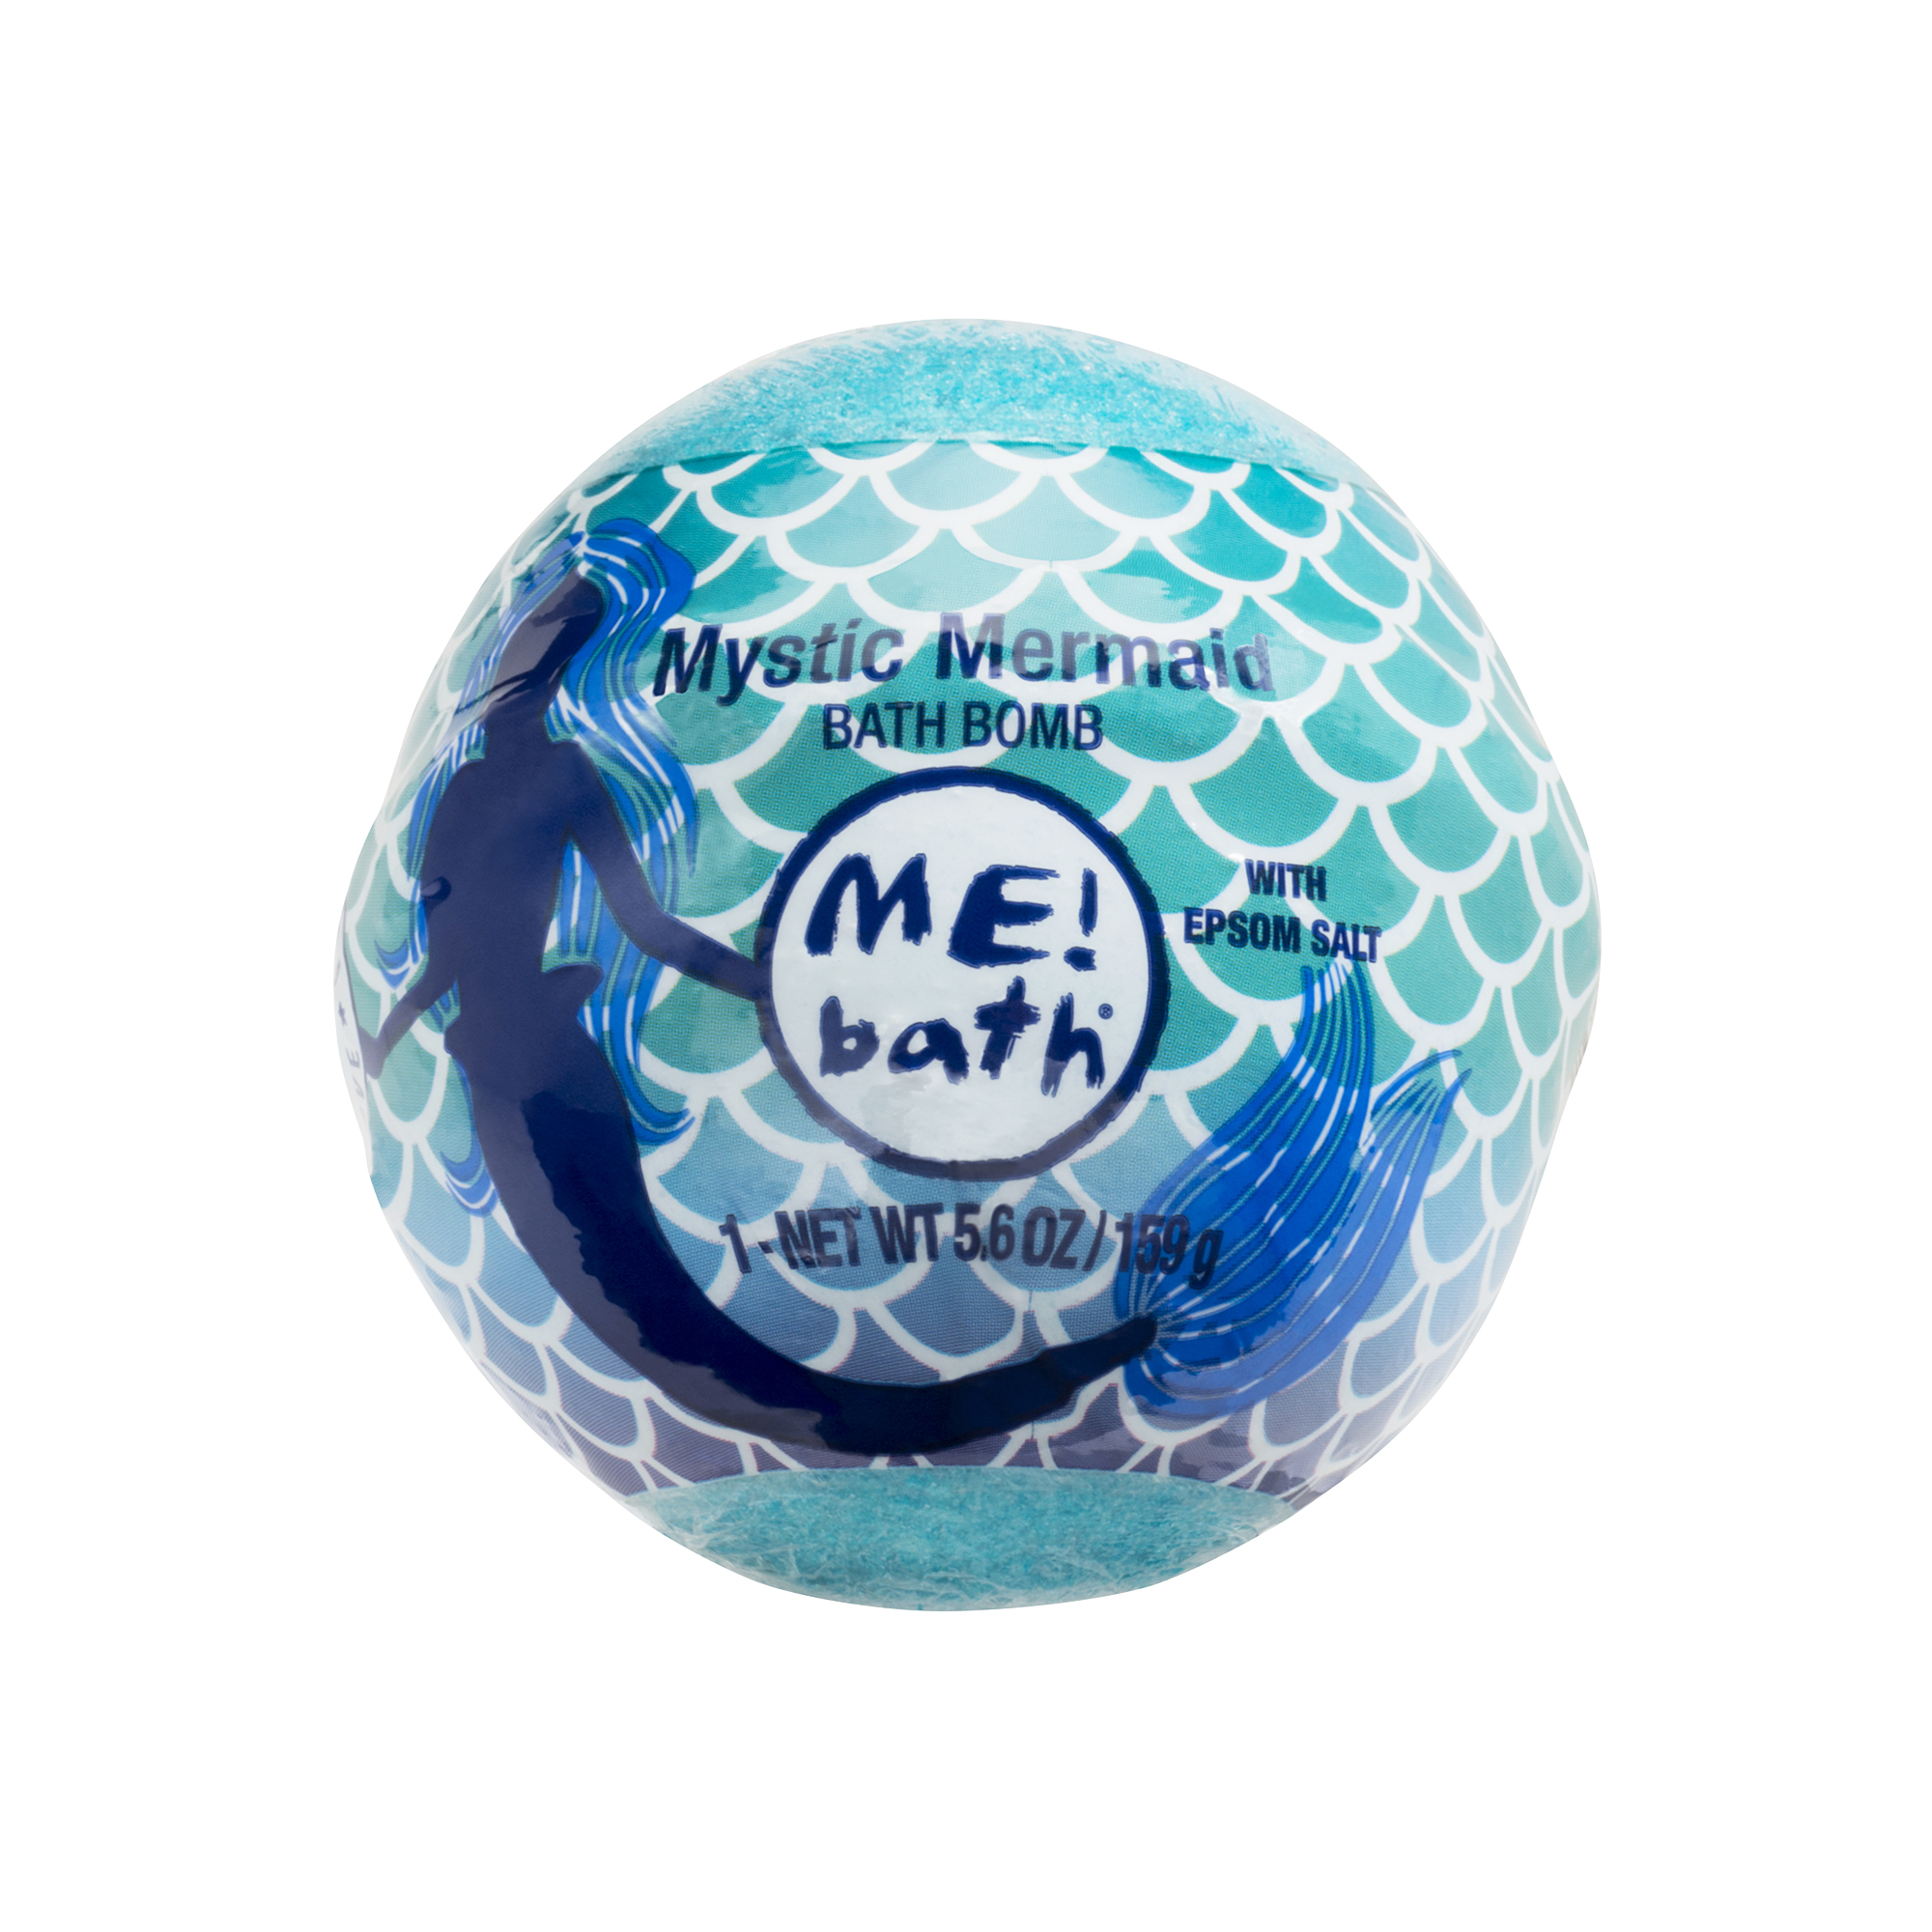 Me Bath Mystic Mermaid Bath Bomb, 5.6oz